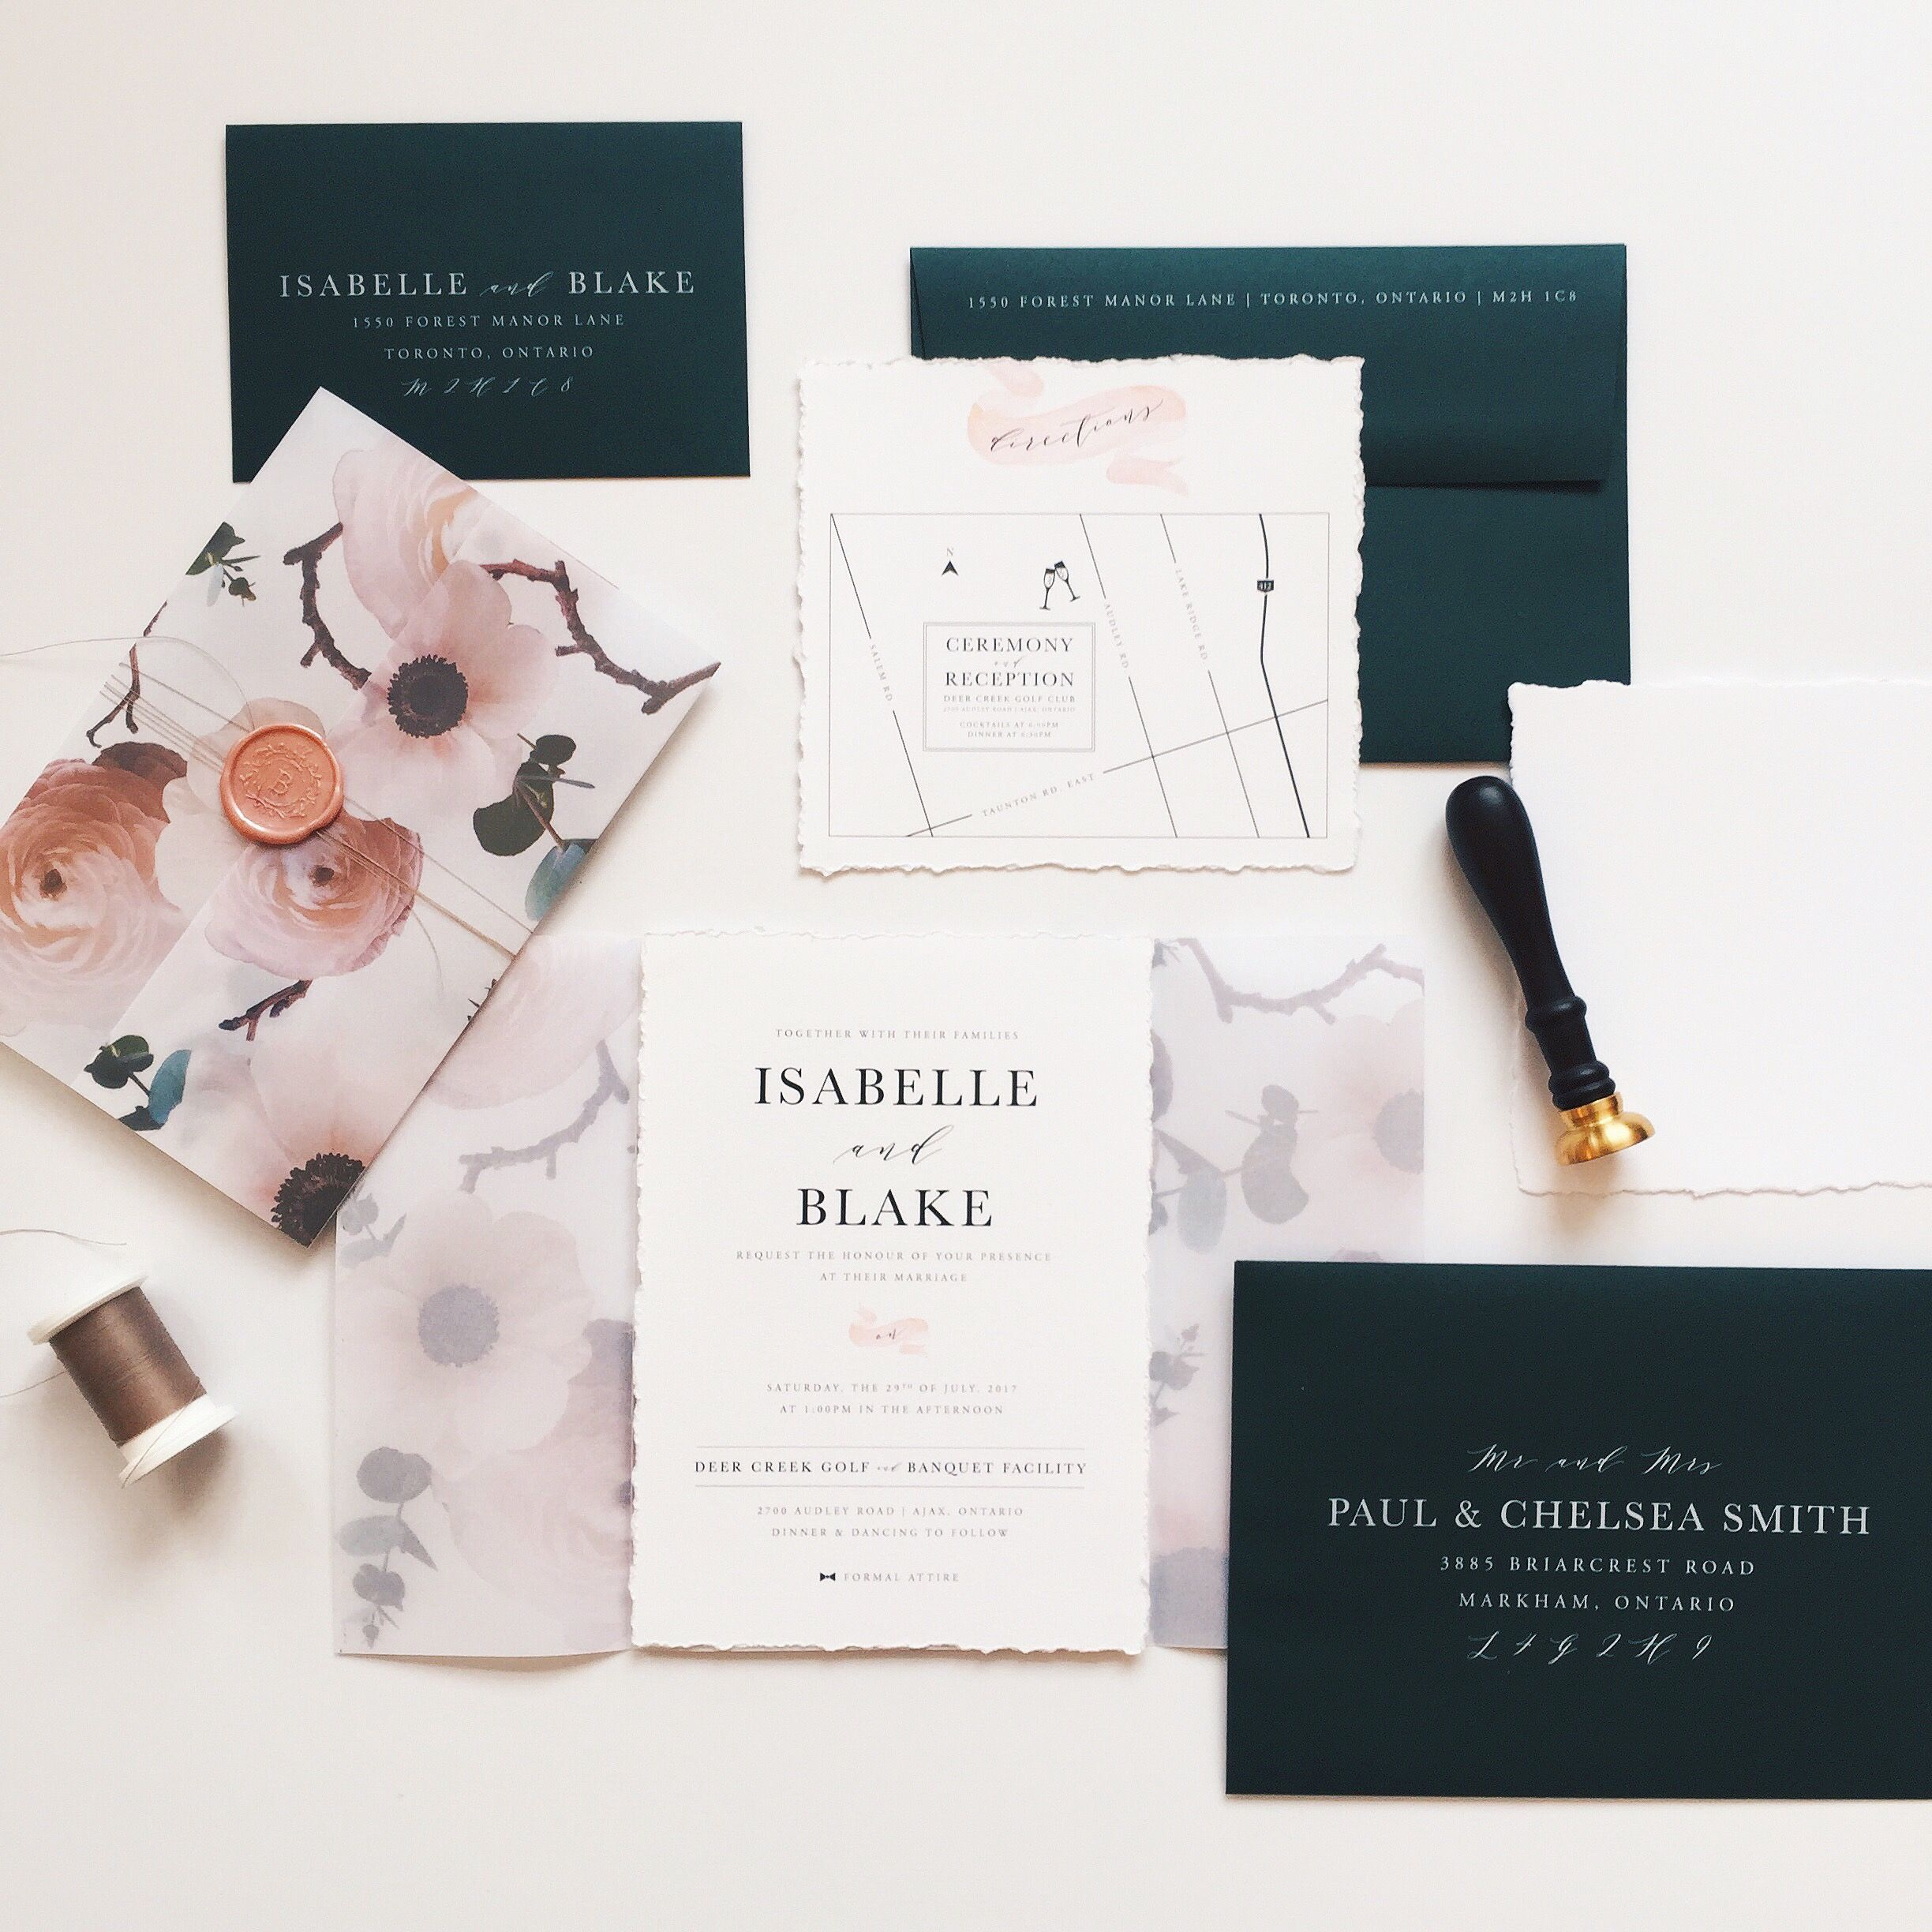 wedding invitations london ontario - Picture Ideas References